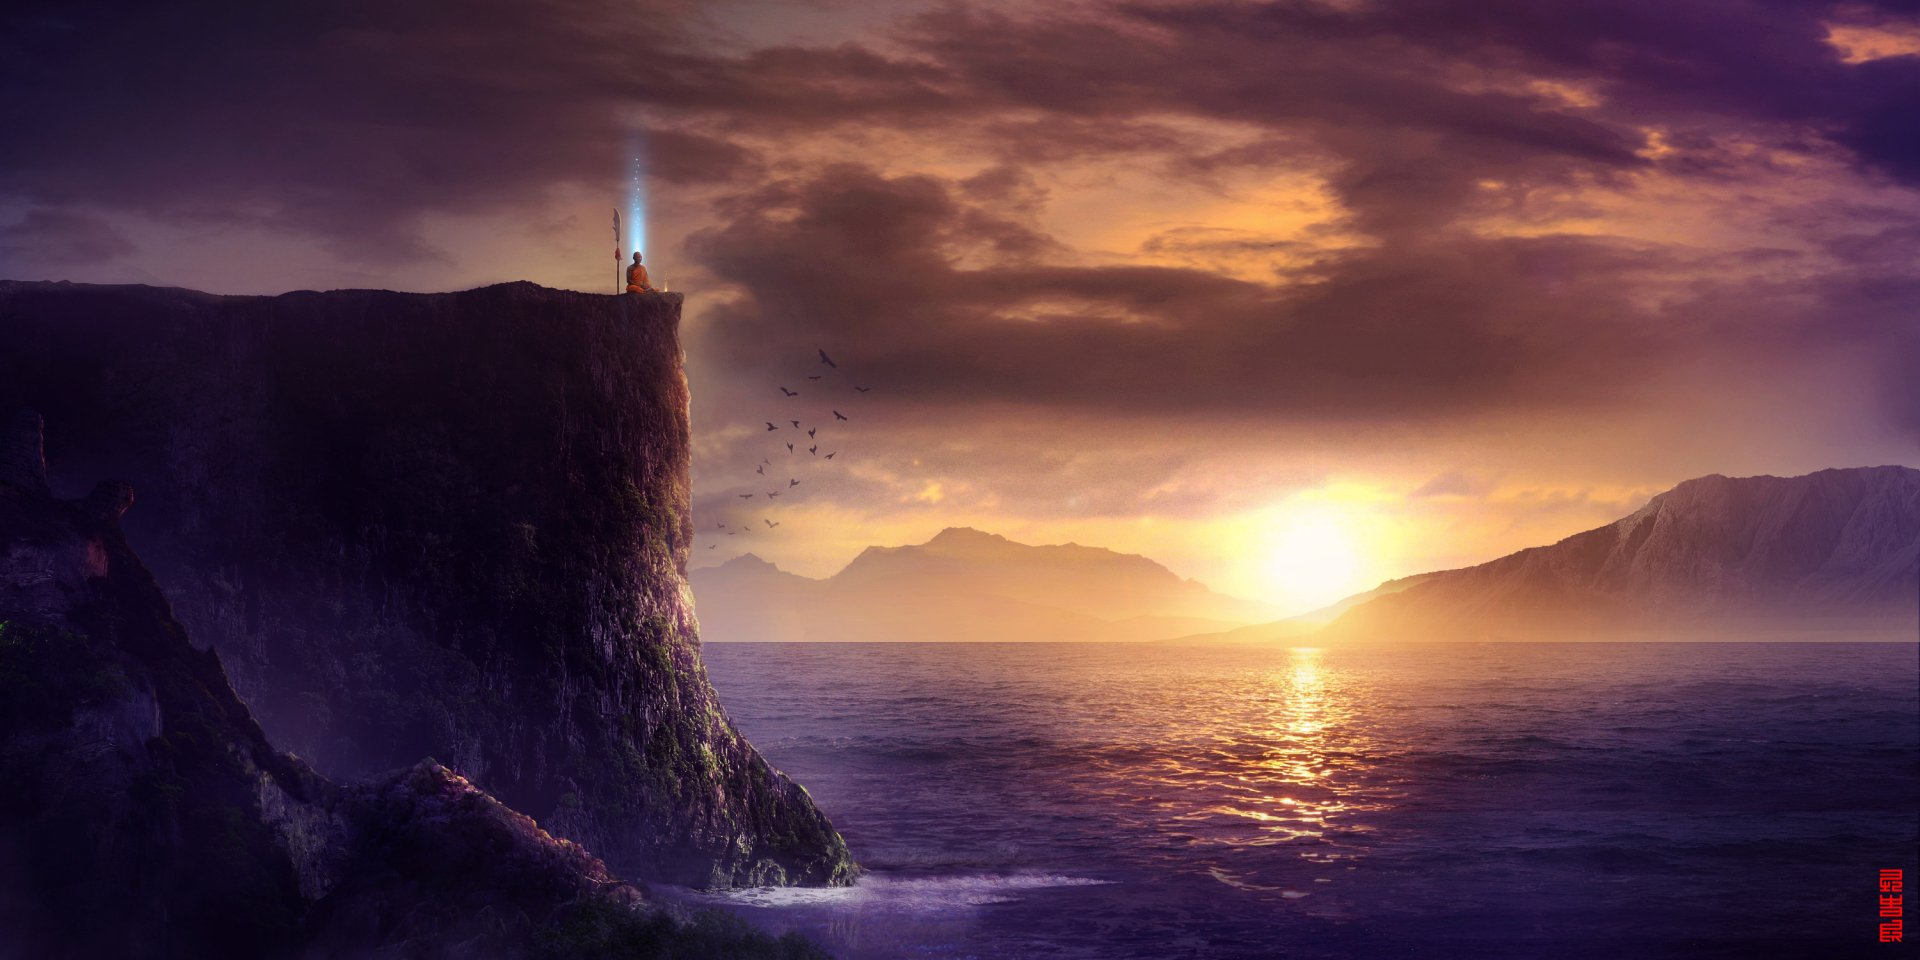 Fantasy - Landscape  Sunset Rock Sea Meditation Monk Wallpaper